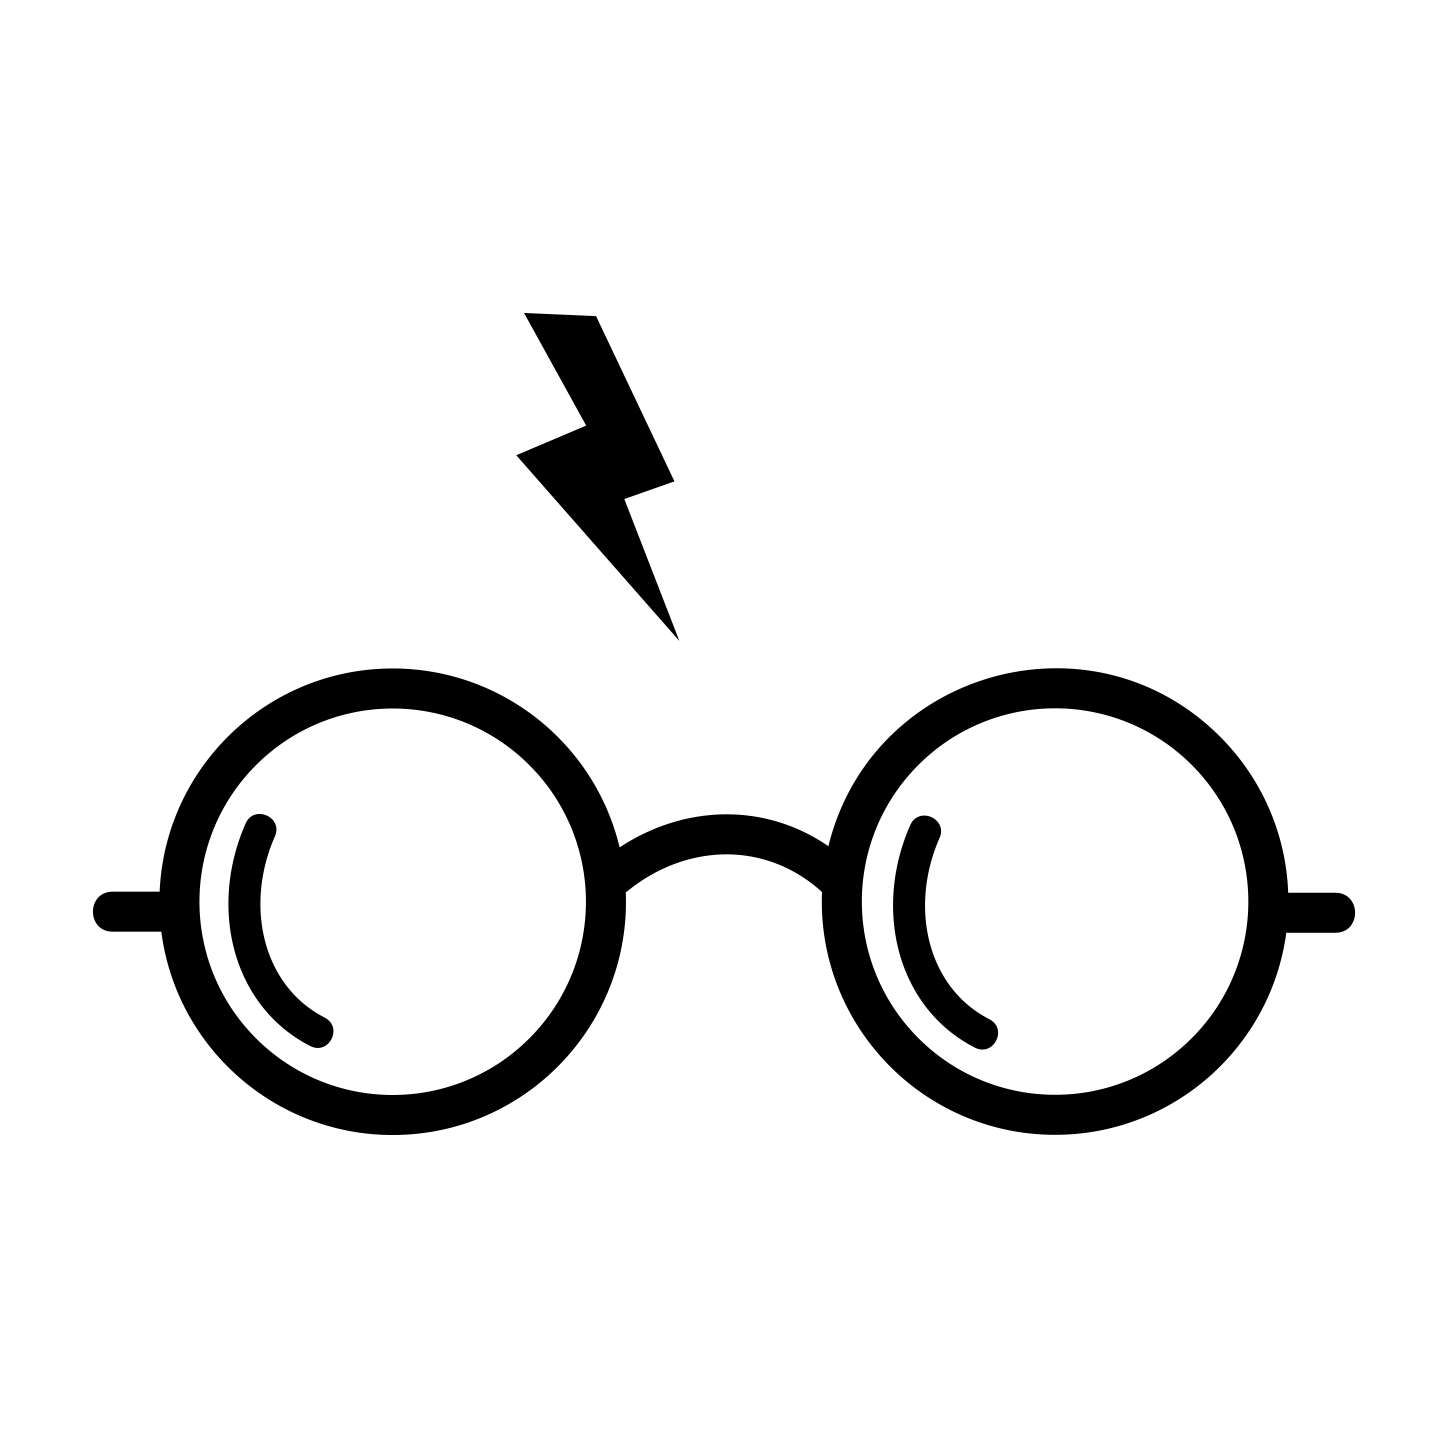 Harry potter scarf clipart black and white clip free library Pin by Kelly Smith on Bathroom | Harry potter glasses, Harry potter ... clip free library